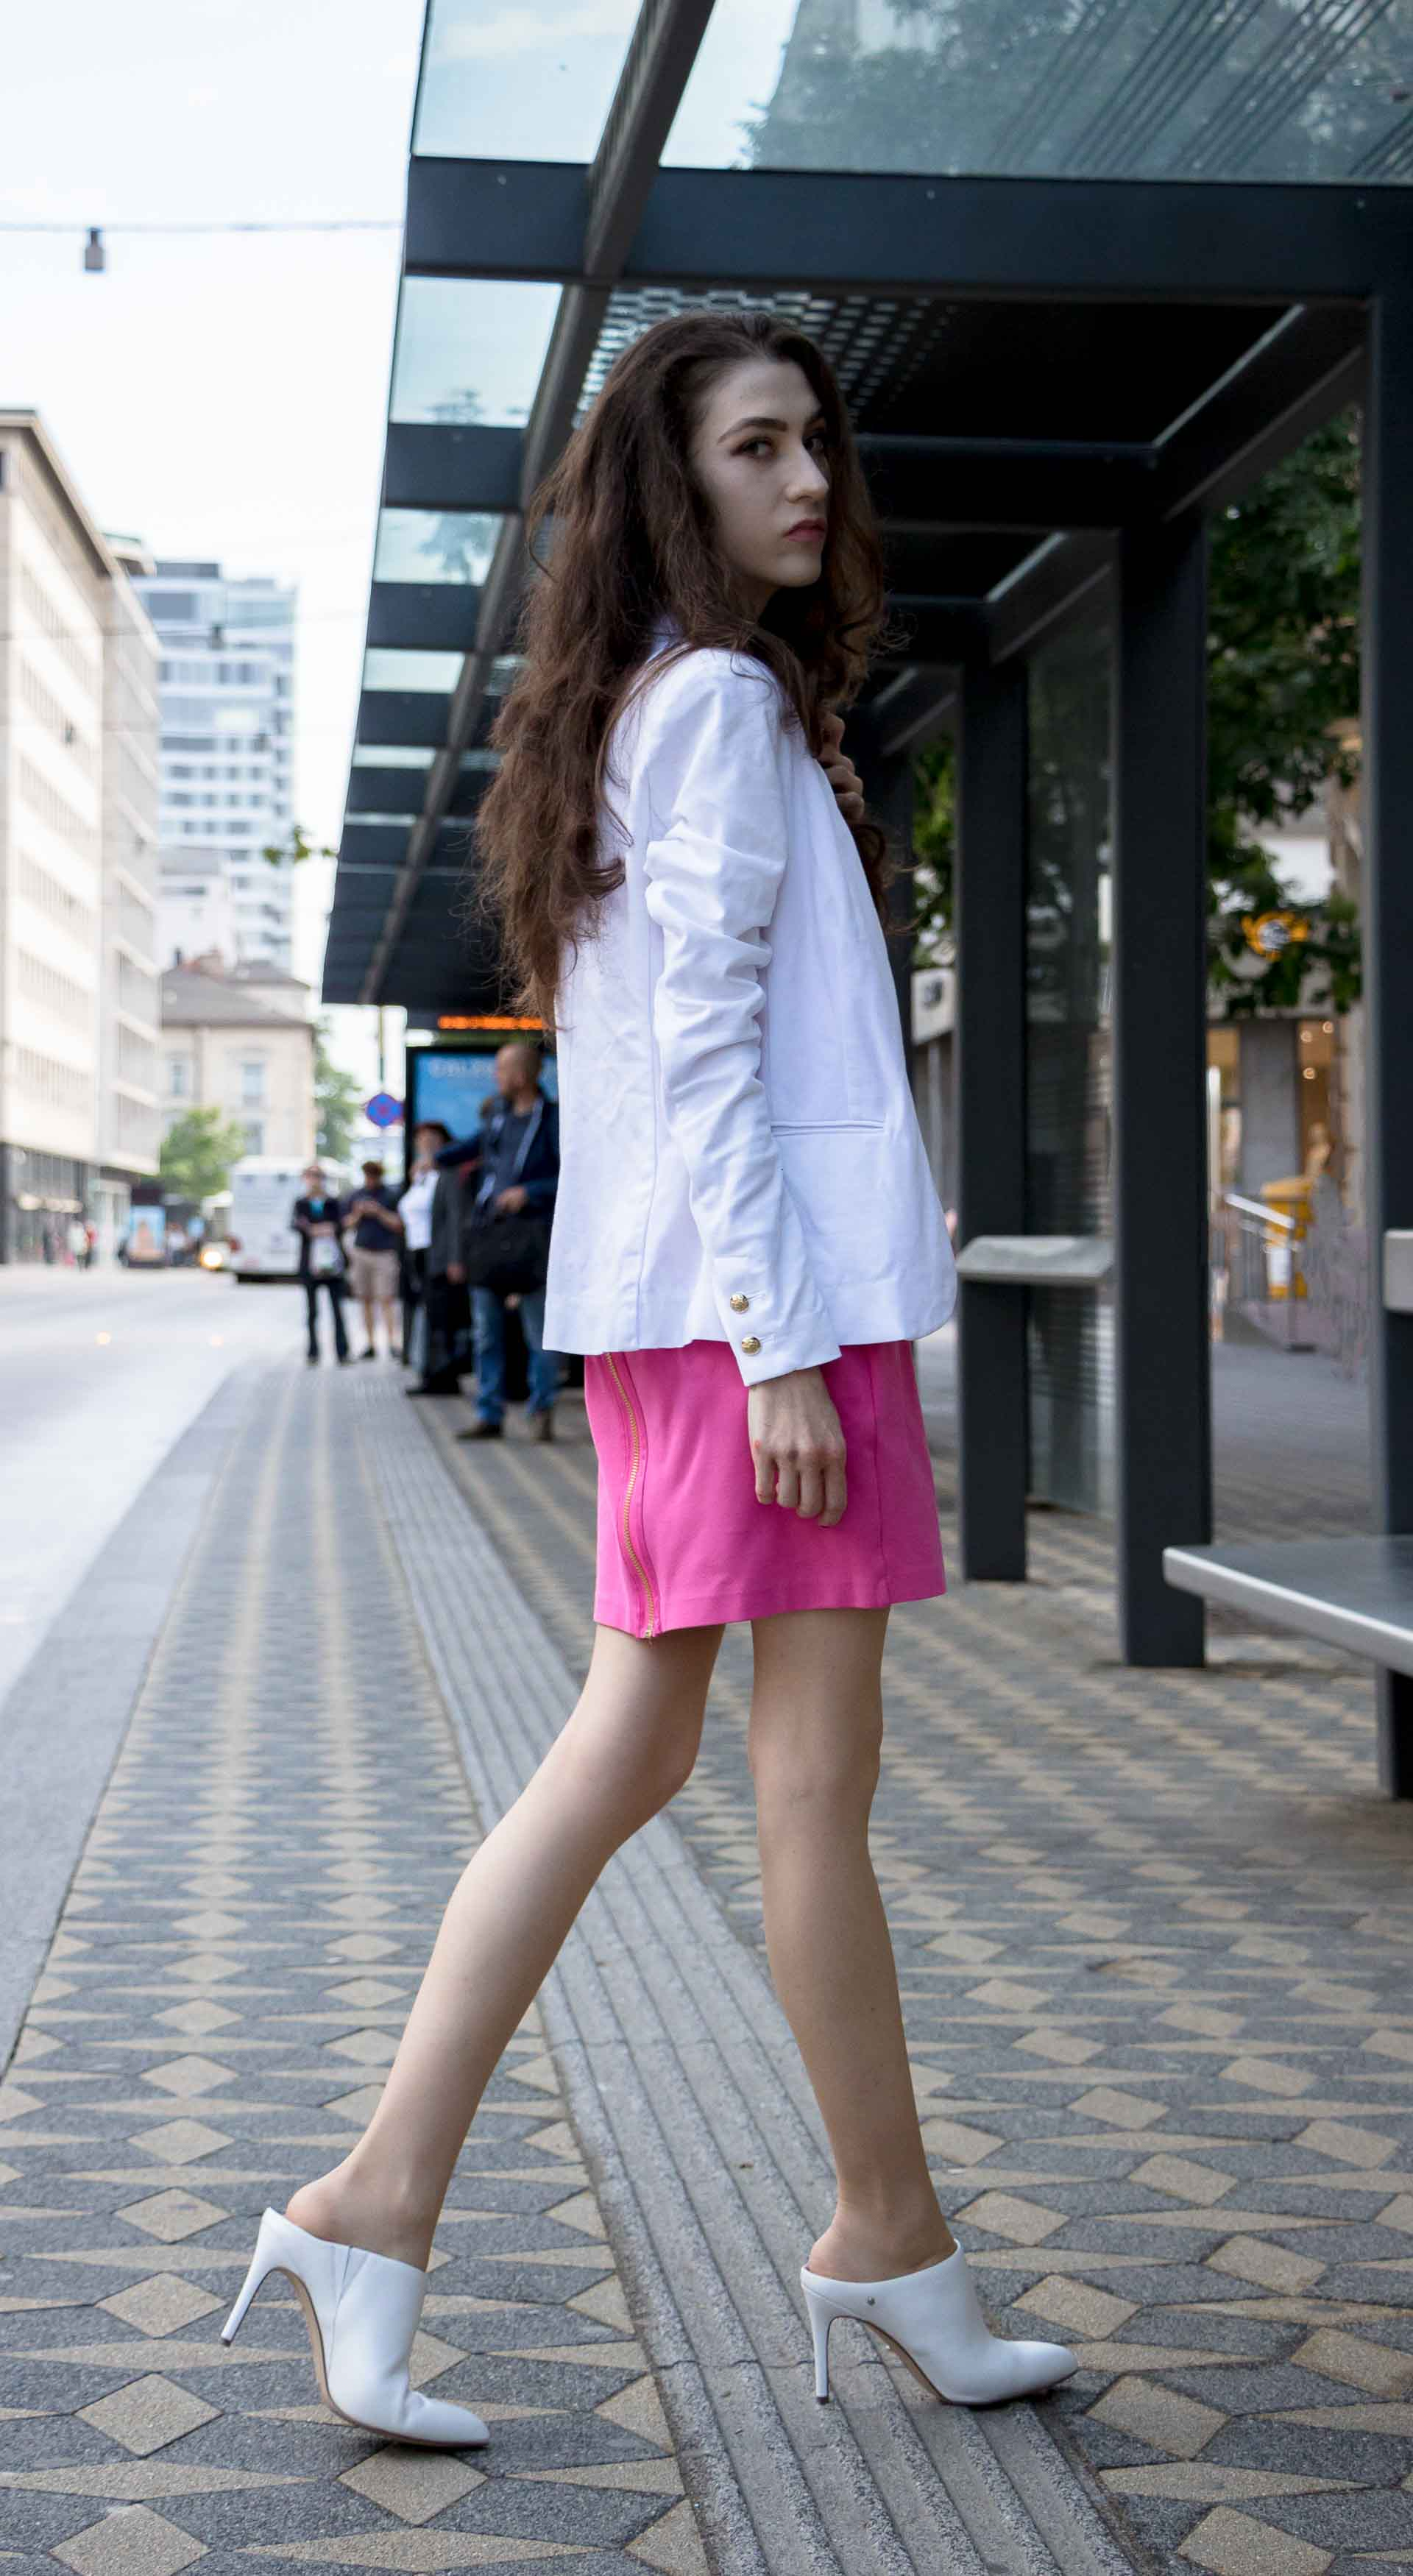 Fashion Blogger Veronika Lipar of Brunette from Wall Street wearing summer business casual outfit, white high heel close toe mules, pink tailored short dress, white blazer, pink top handle bag rushing to work